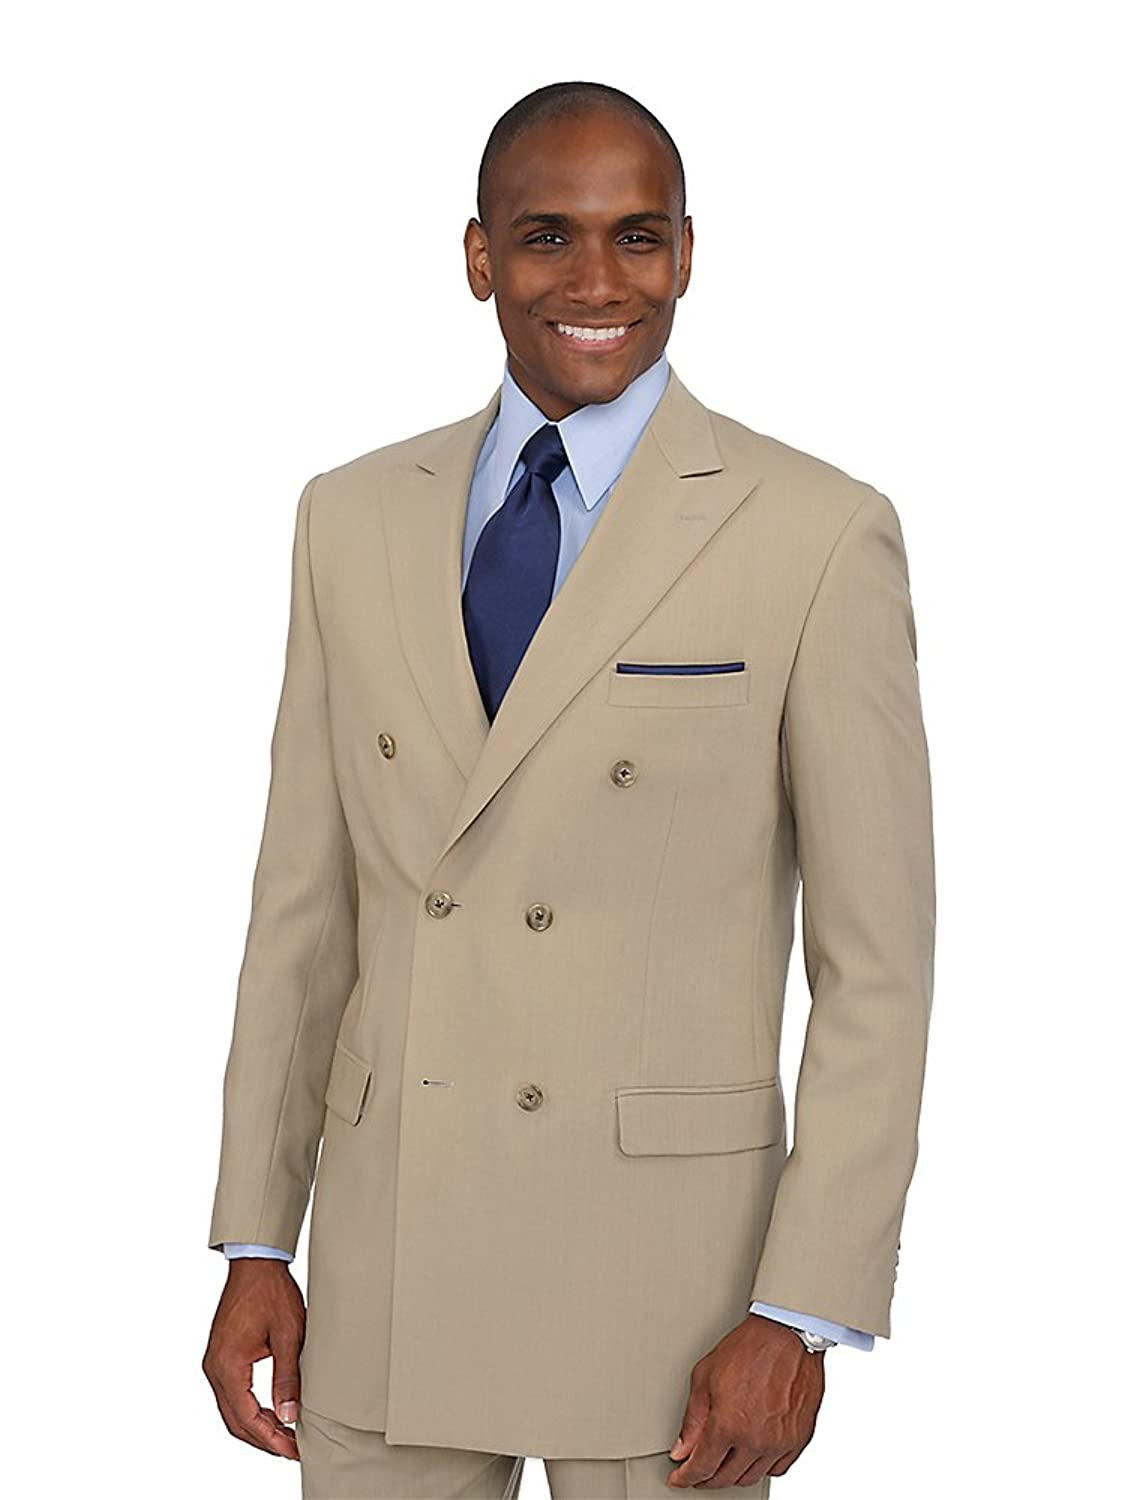 The Franklin Tailored Tracy Suit. shopnow-bqimqrqk.tk It's true: Amazon has started selling its own private-label clothing.. One of these labels, Franklin Tailored, sells men's suits and accessories. Now.